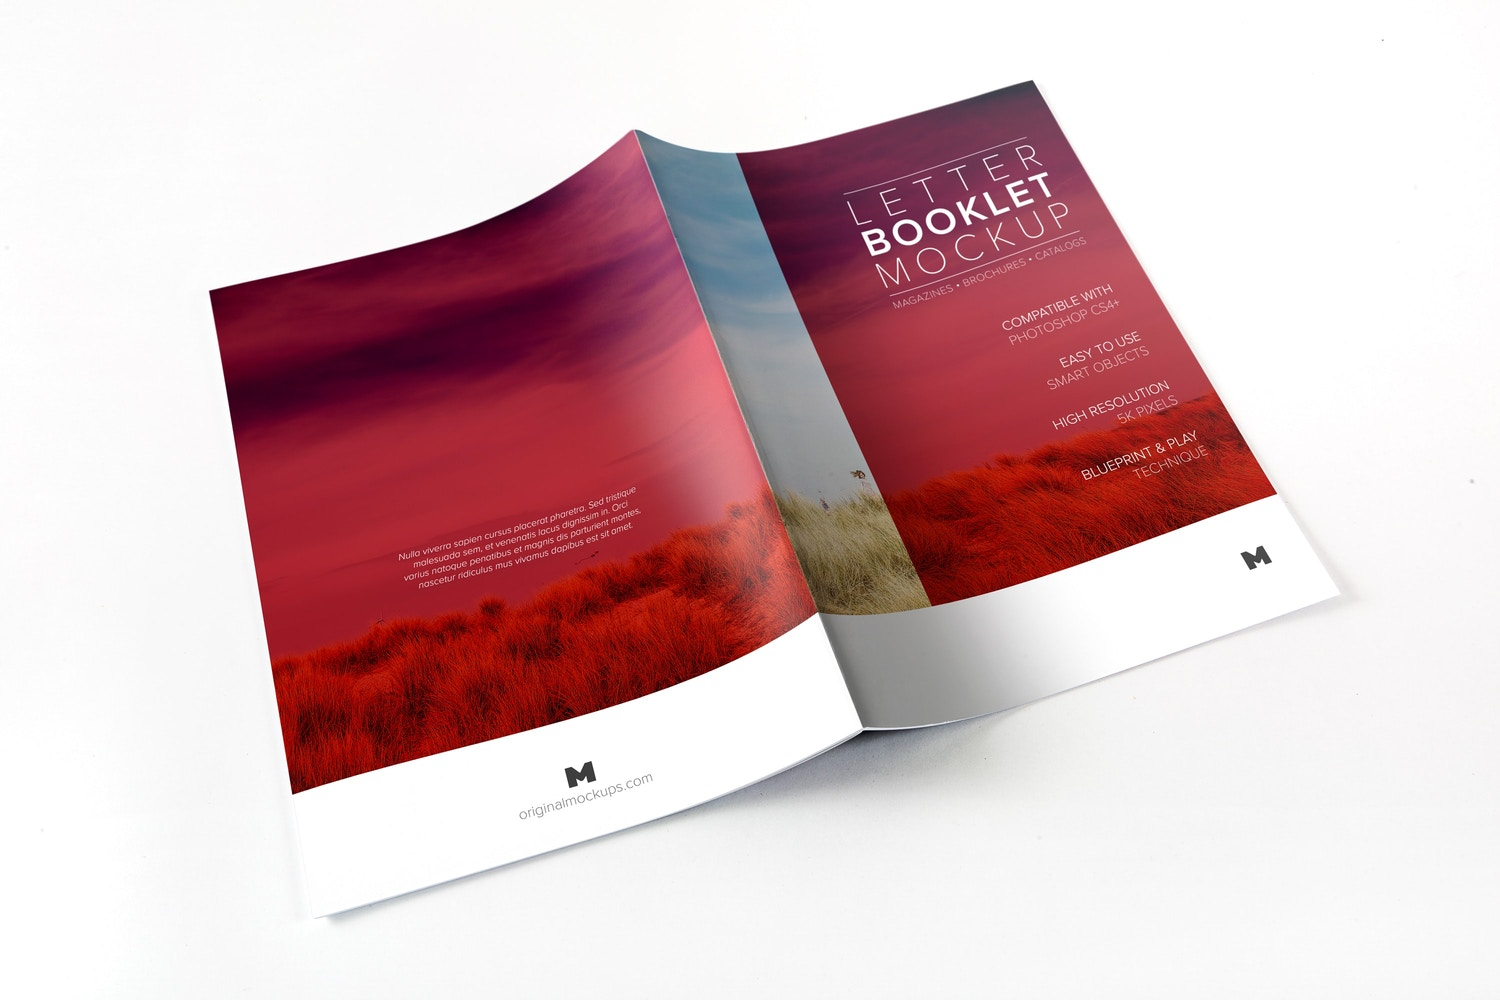 Letter Booklet Spreads Covers Mockup 01